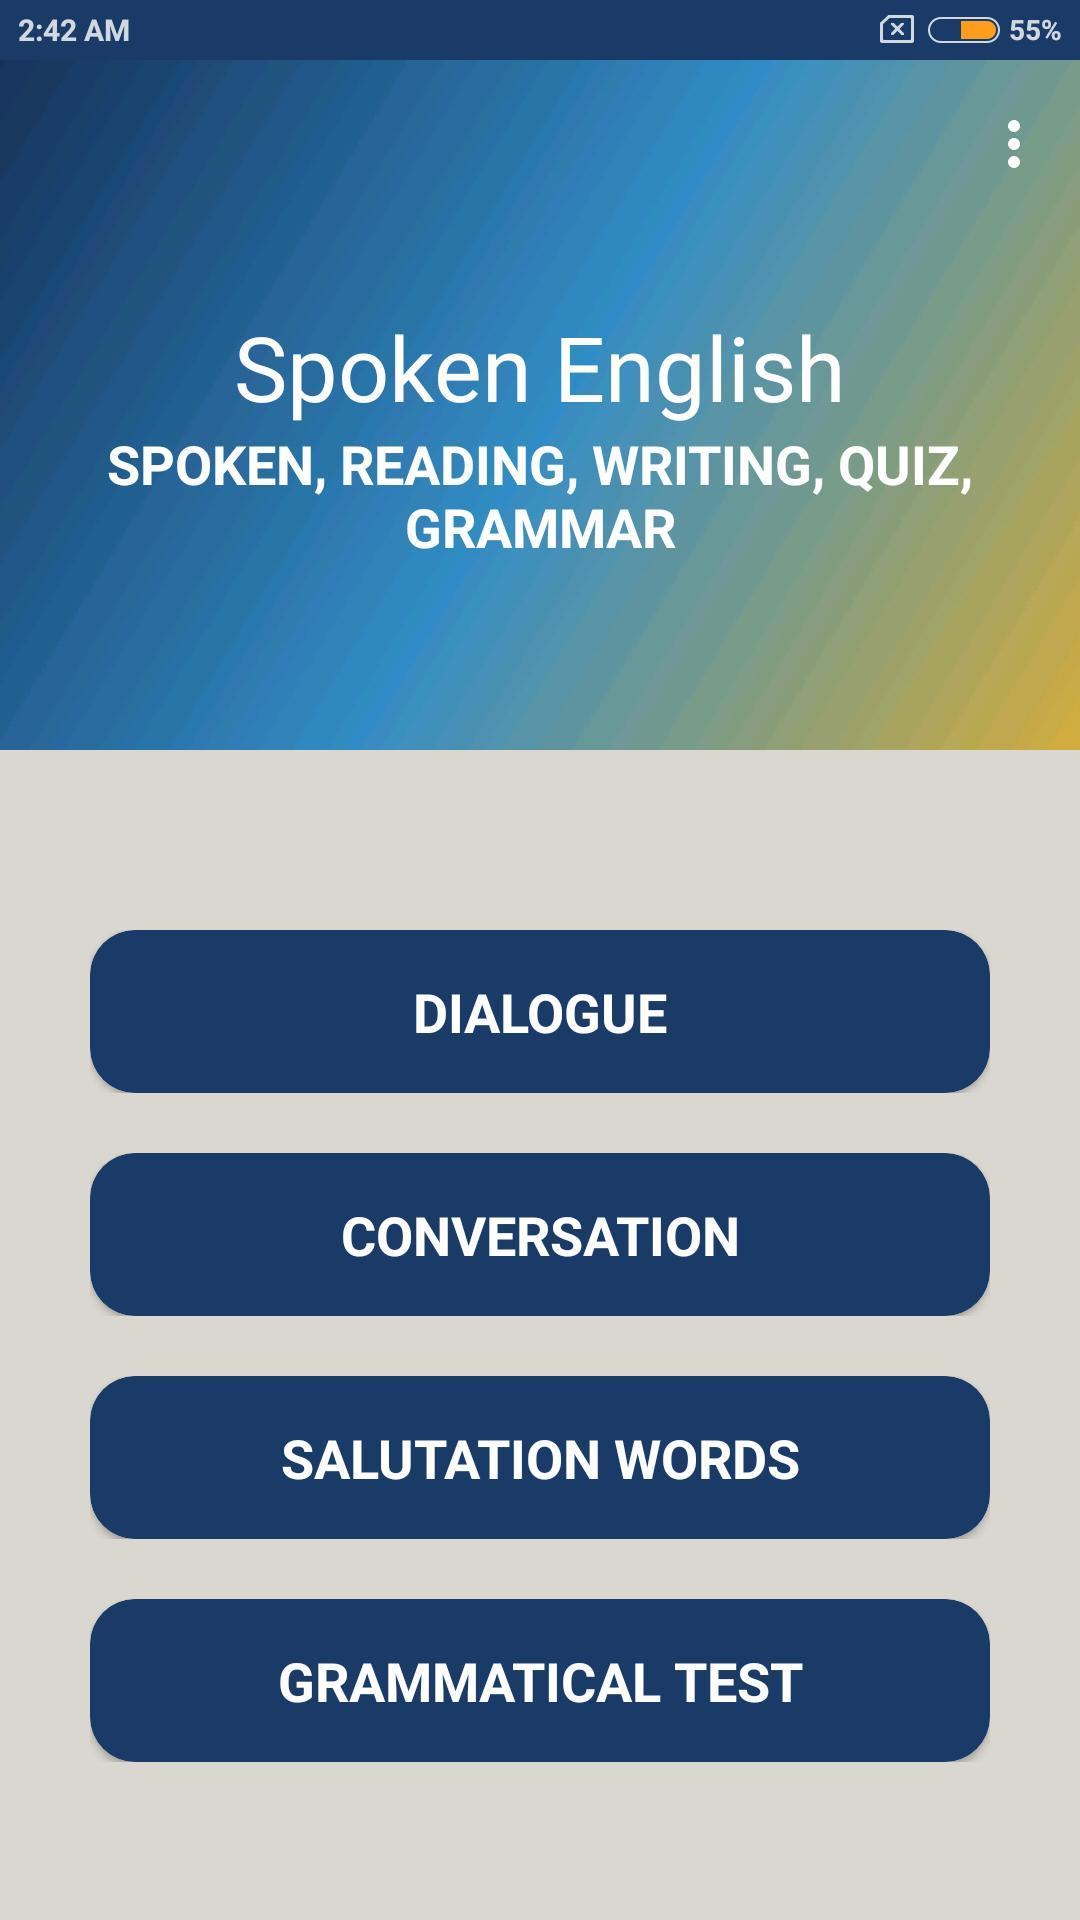 Spoken English for Android - APK Download